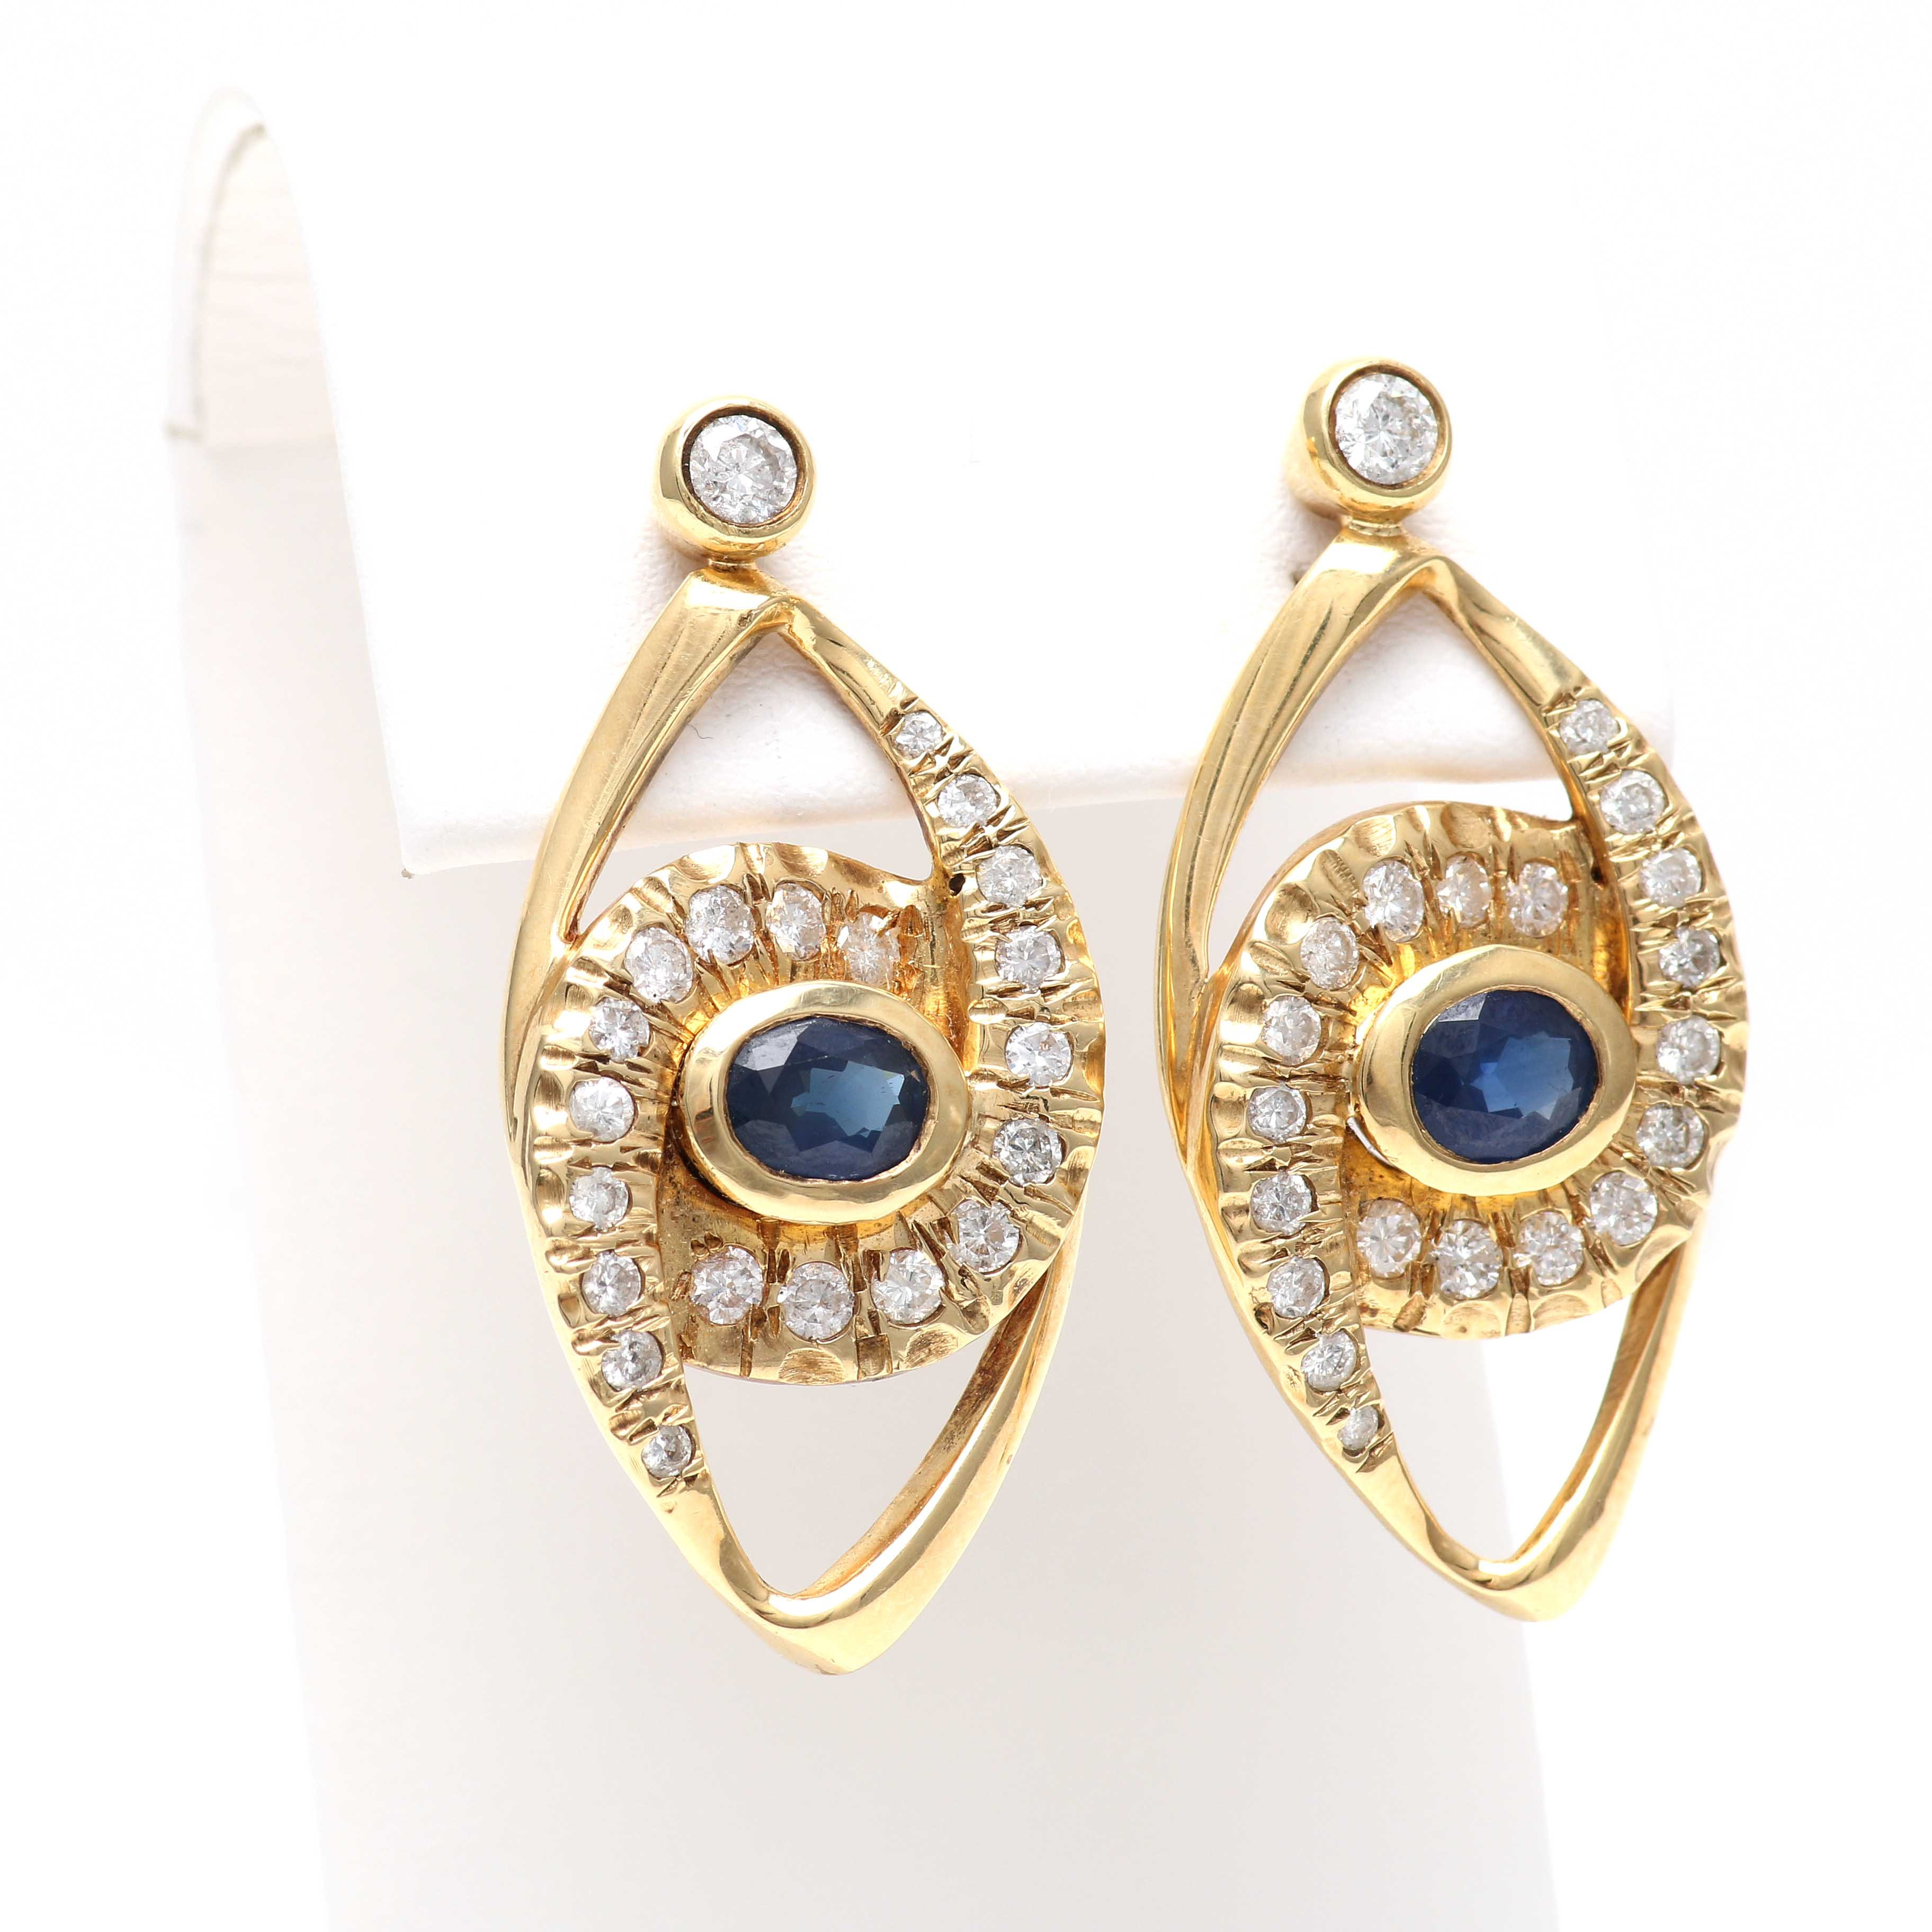 14K Yellow Gold 1.58 CTW Sapphire and 1.96 CTW Diamond Earrings